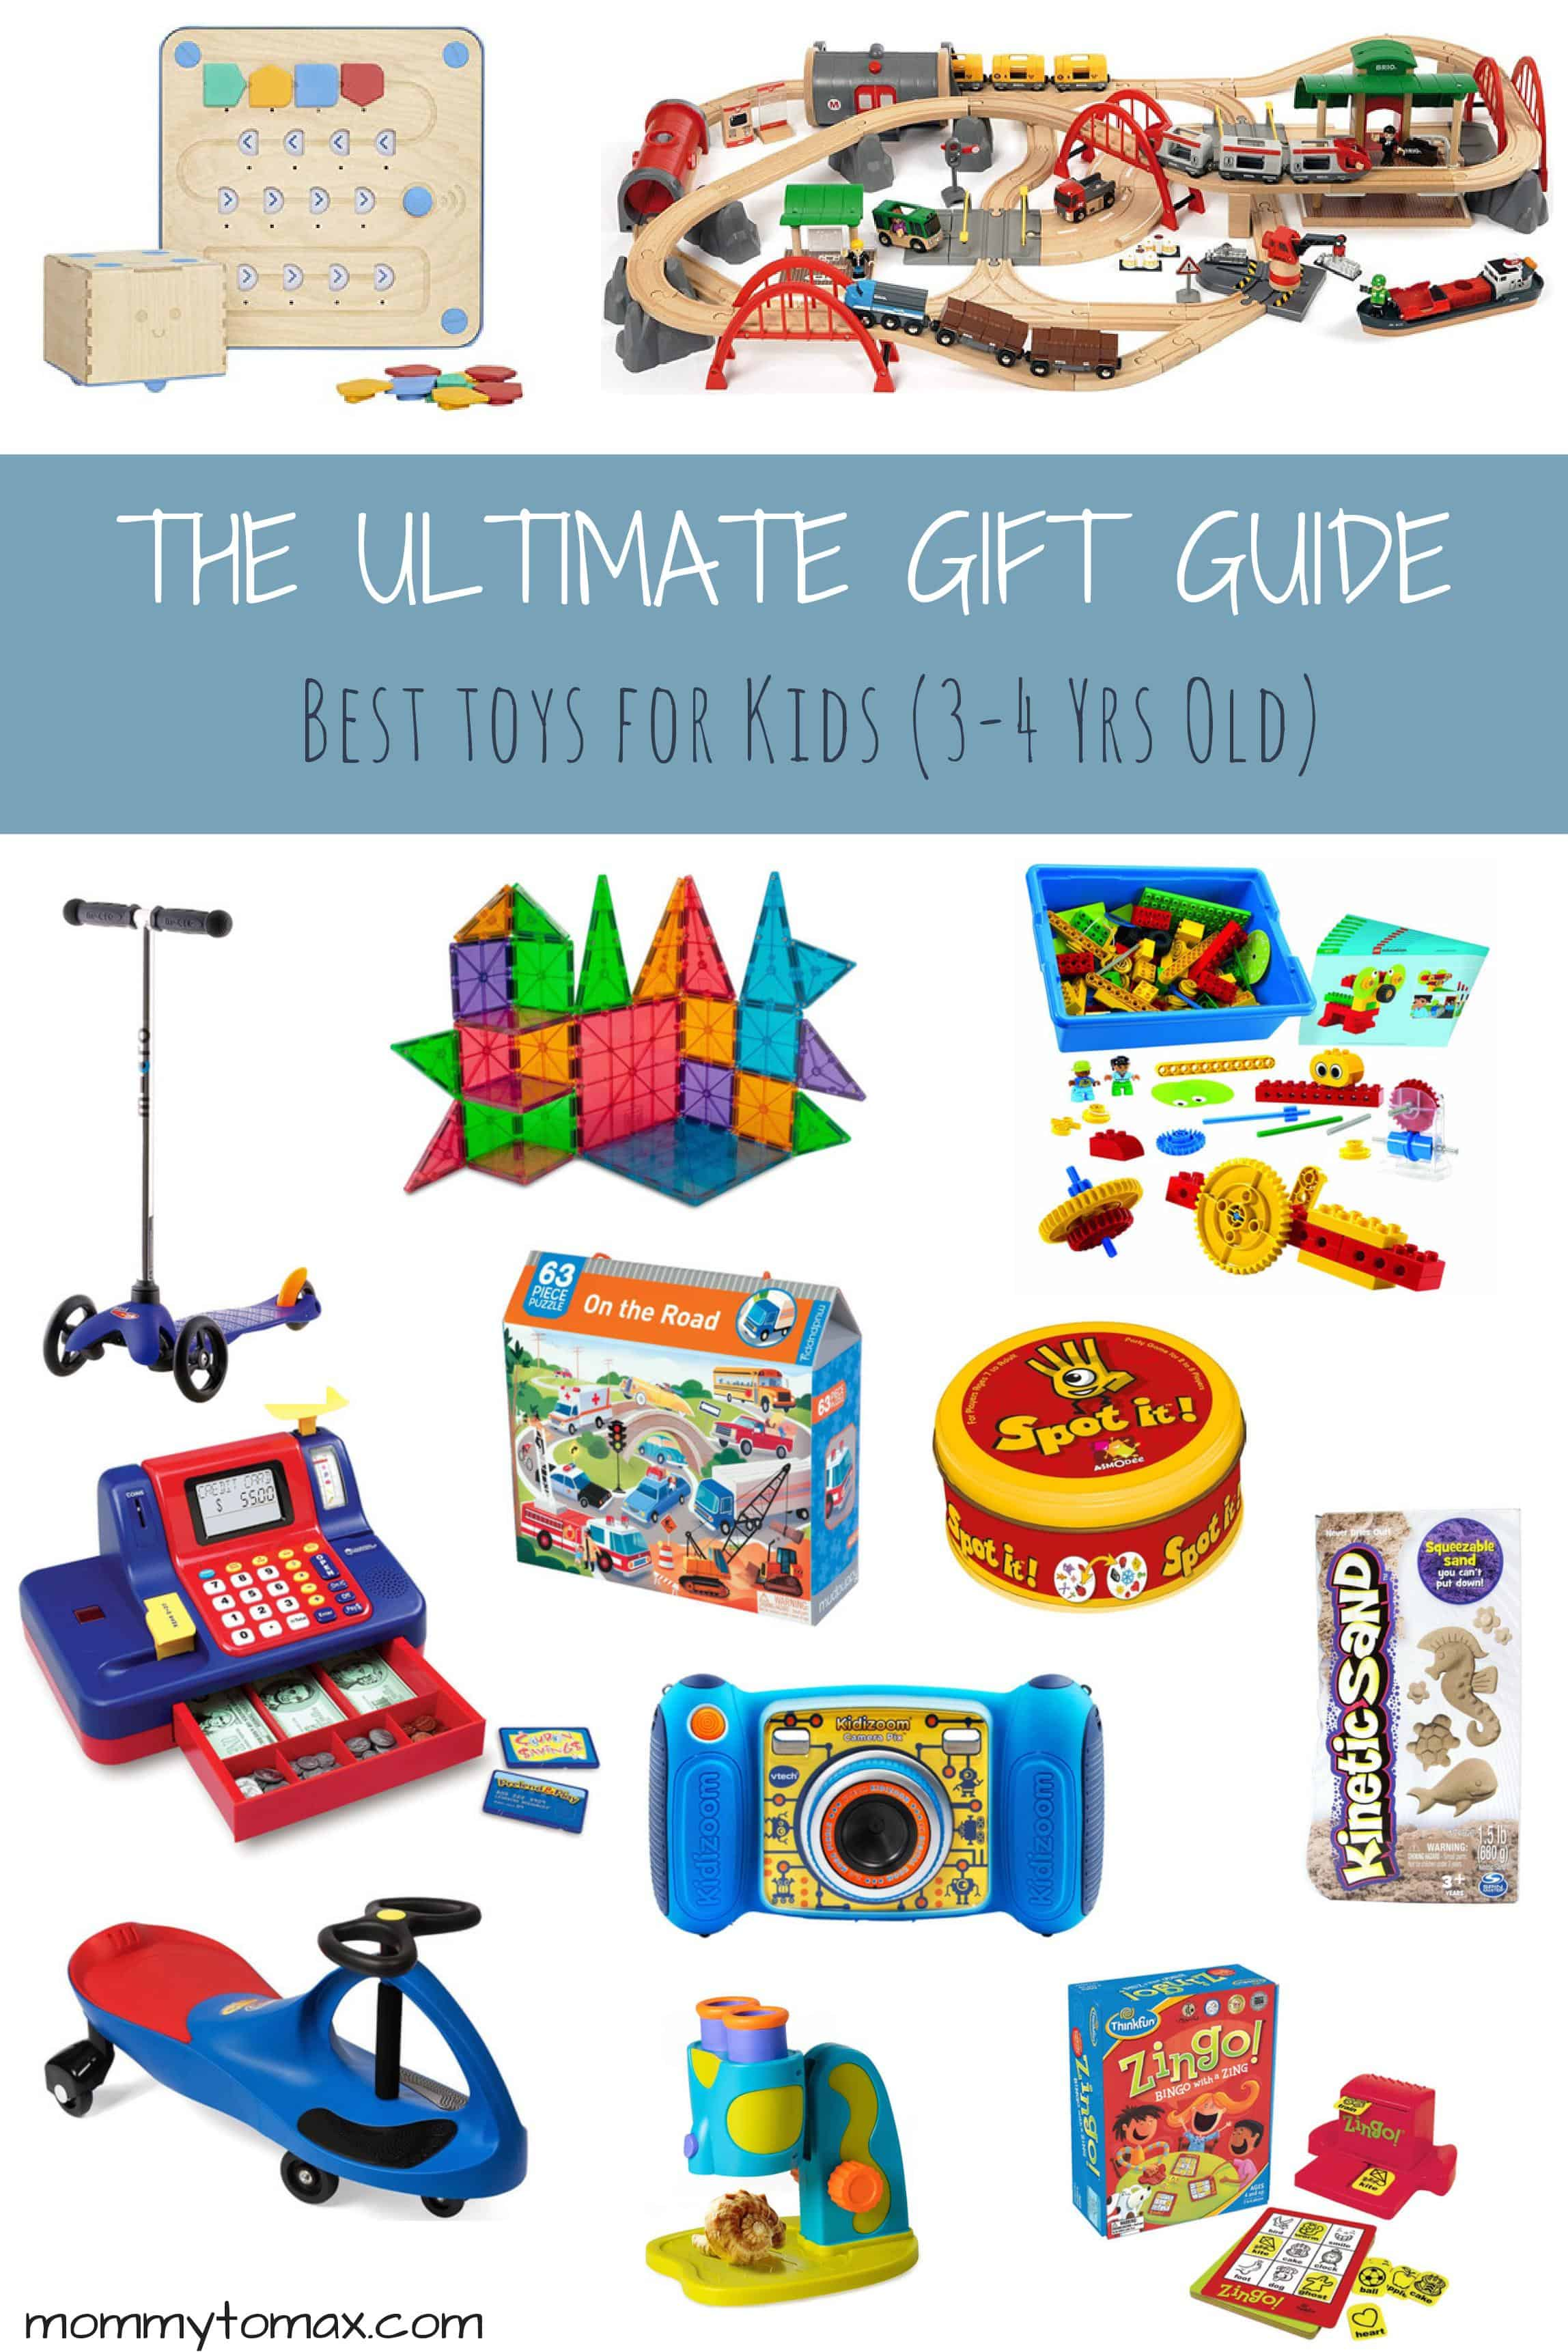 72d8fcd4fad9 It s that time of the year when we are fast approaching the holiday season.  My last gift guide for toddlers ages 2-3 has been a big hit so I figured I  would ...